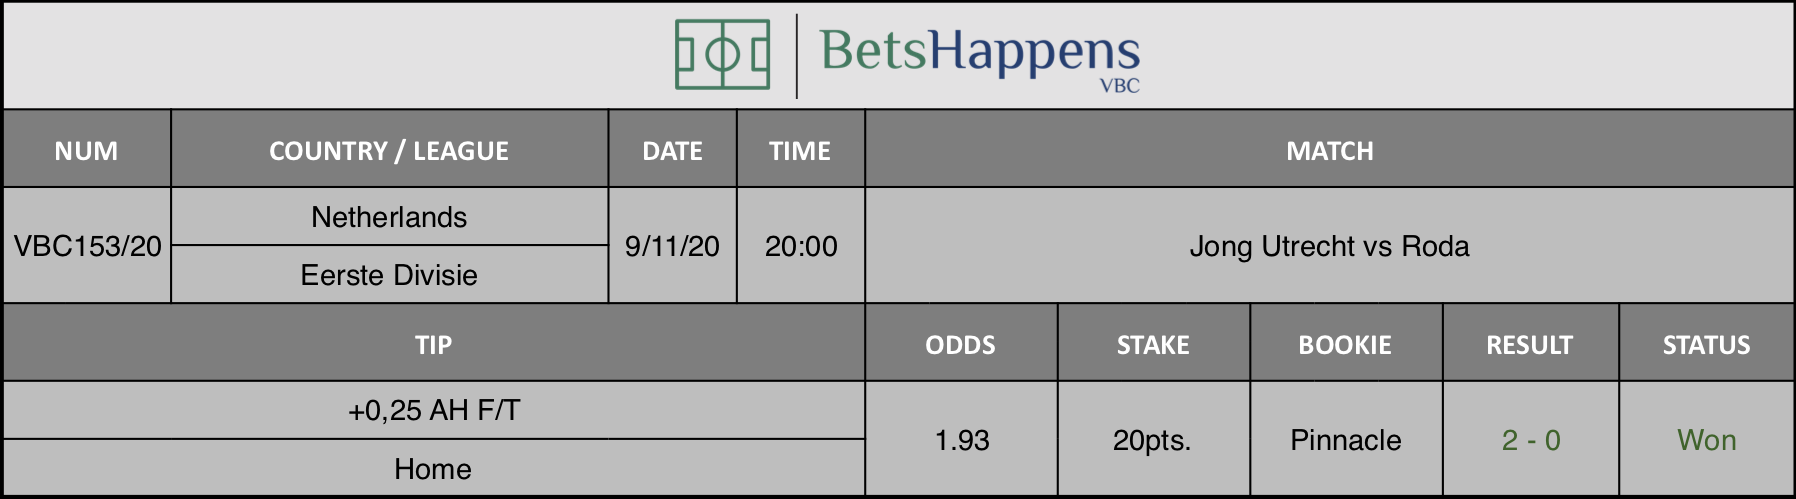 Results of our tip for the Jong Utrecht vs Roda match where +0,25 AH F/T  Home is recommended.